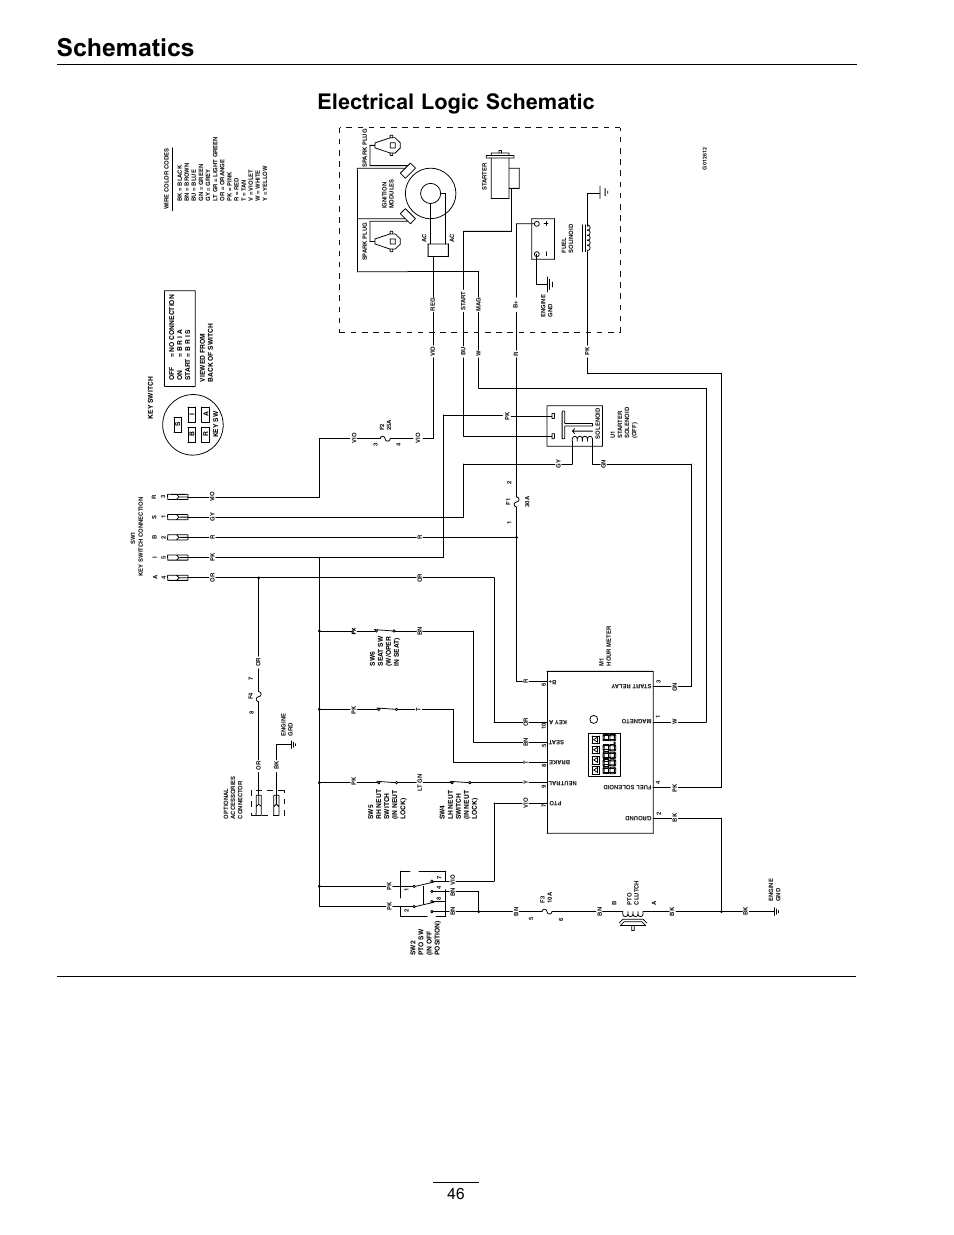 Logic Diagram Engine Schematic Wiring Library Exmark Ignition Switch Schematics Electrical Quest Sp Models 850 User Manual Page 46